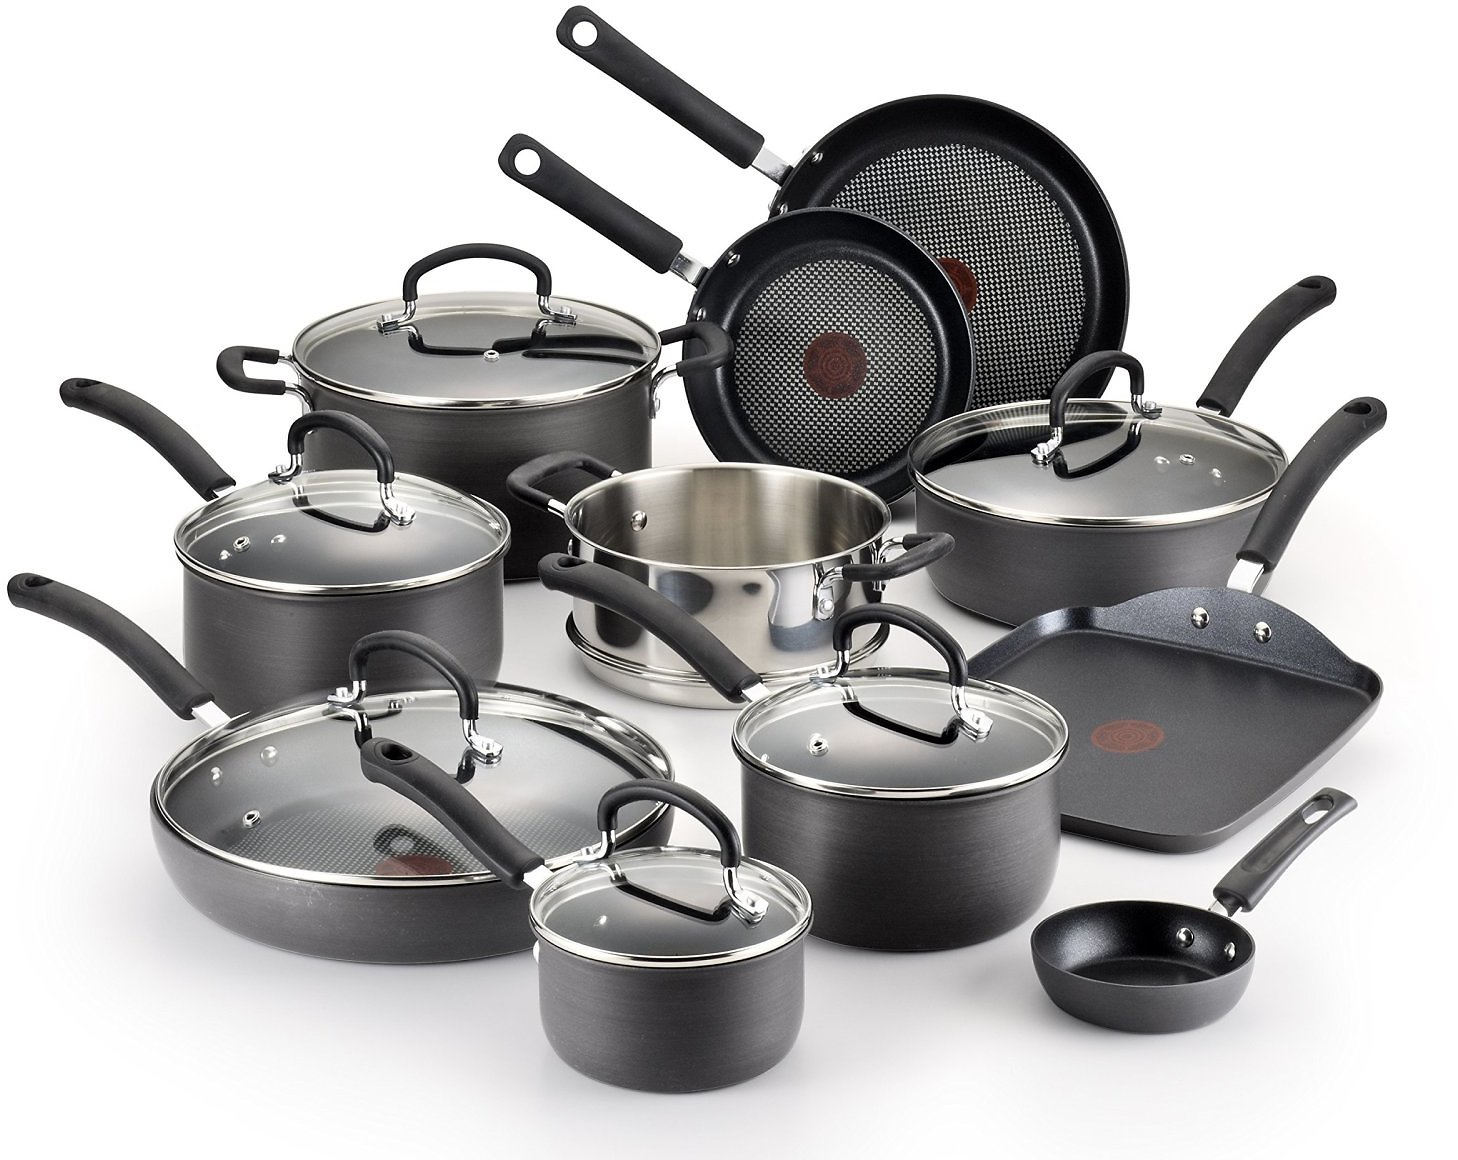 T-fal Ultimate Hard Anodized Non-stick Dishwasher Safe Oven Safe Cookware